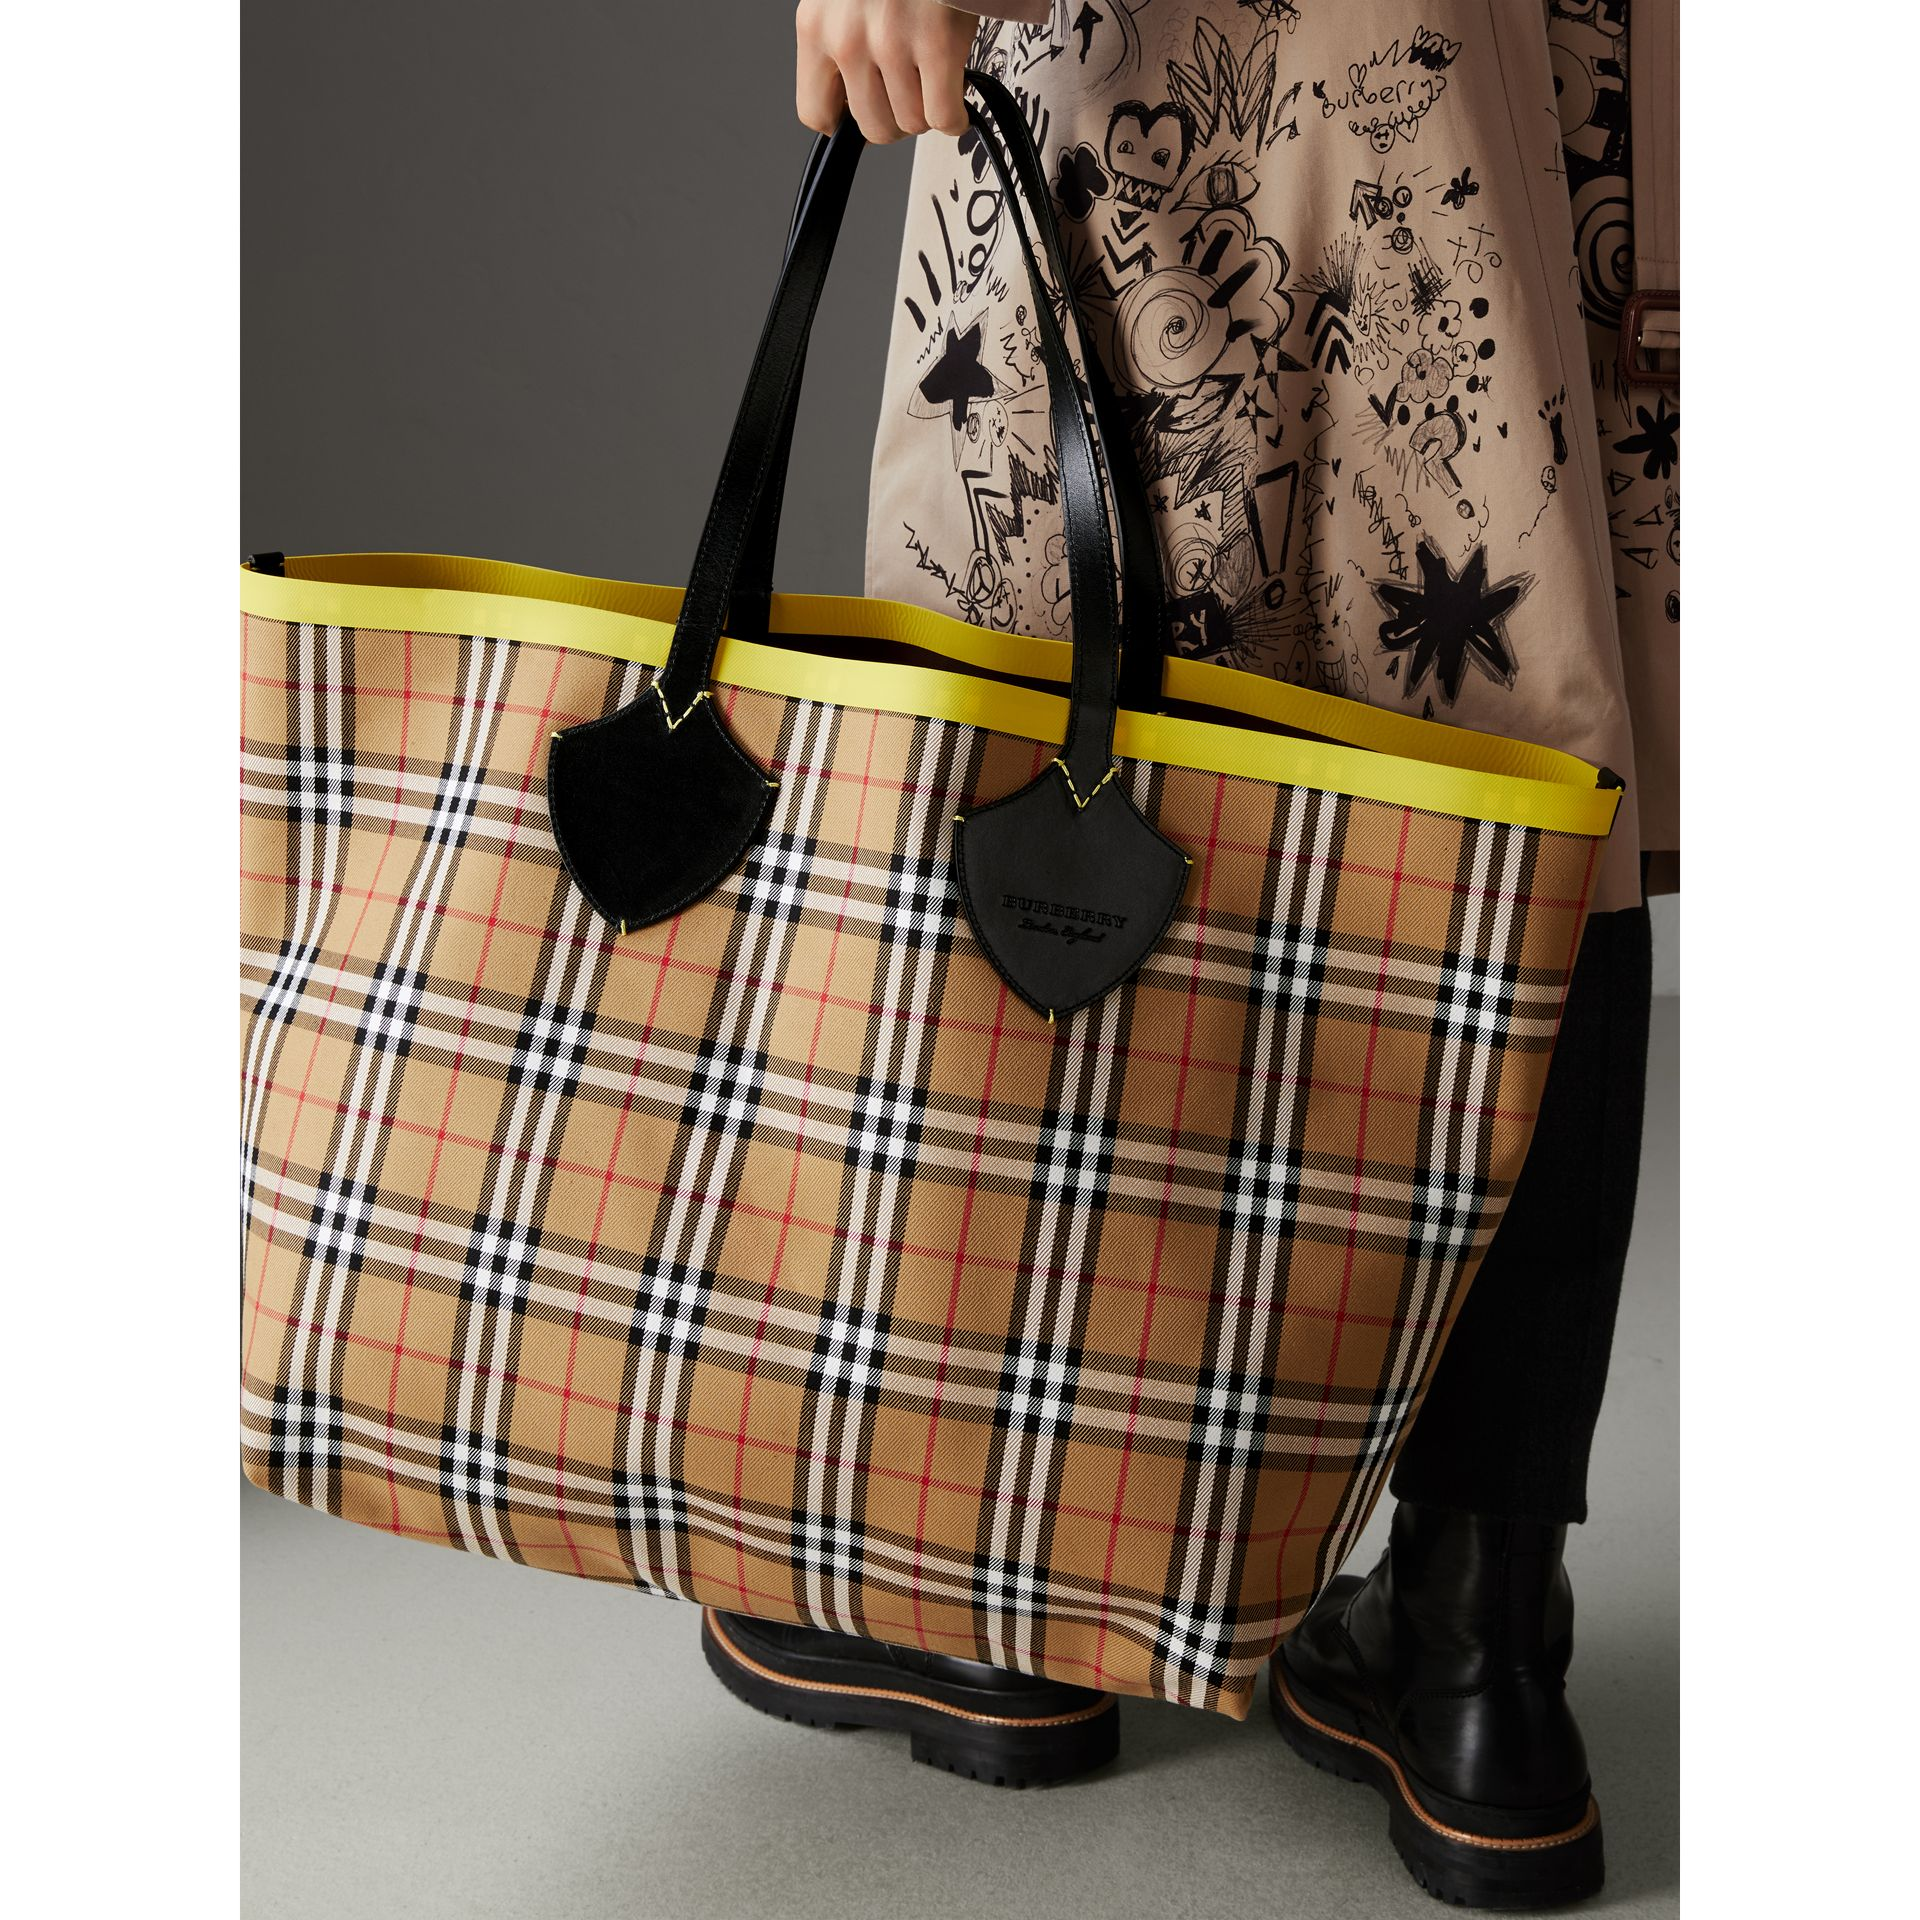 Sac tote The Giant réversible en coton à motif Vintage check et cuir (Rouge Acajou/jaune Antique) | Burberry Canada - photo de la galerie 6